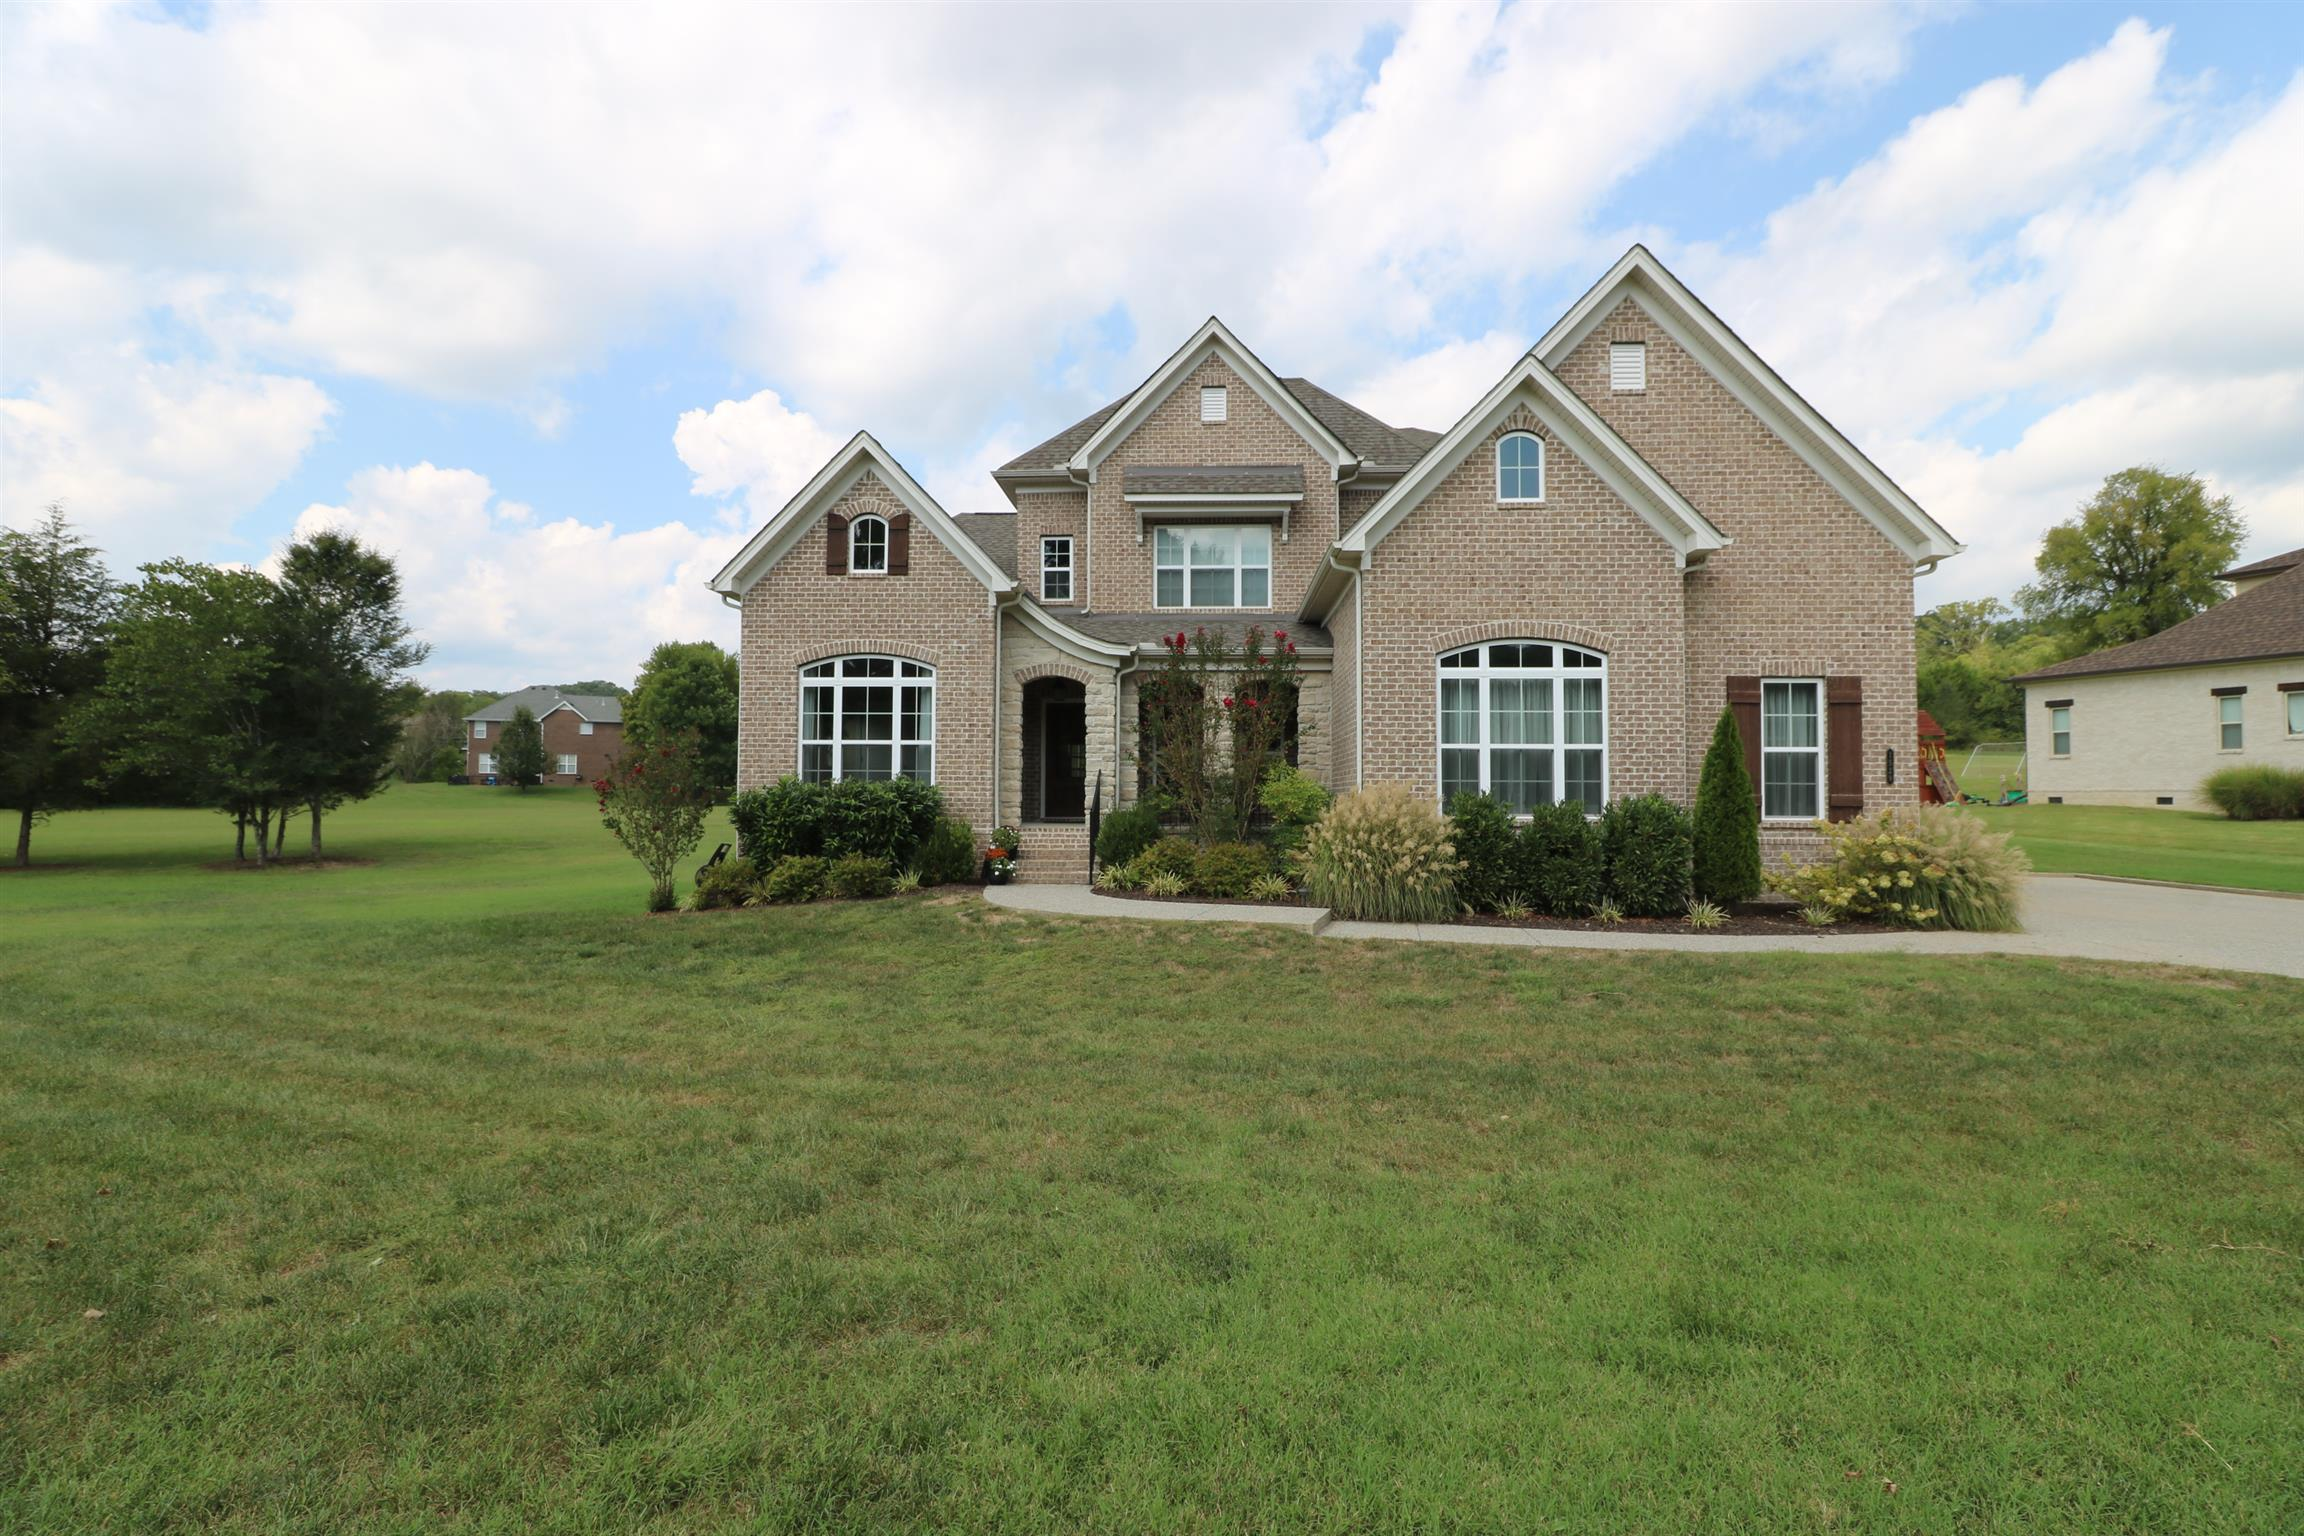 Image of a lovely single family home in Fountainbrooke, Brentwood, TN